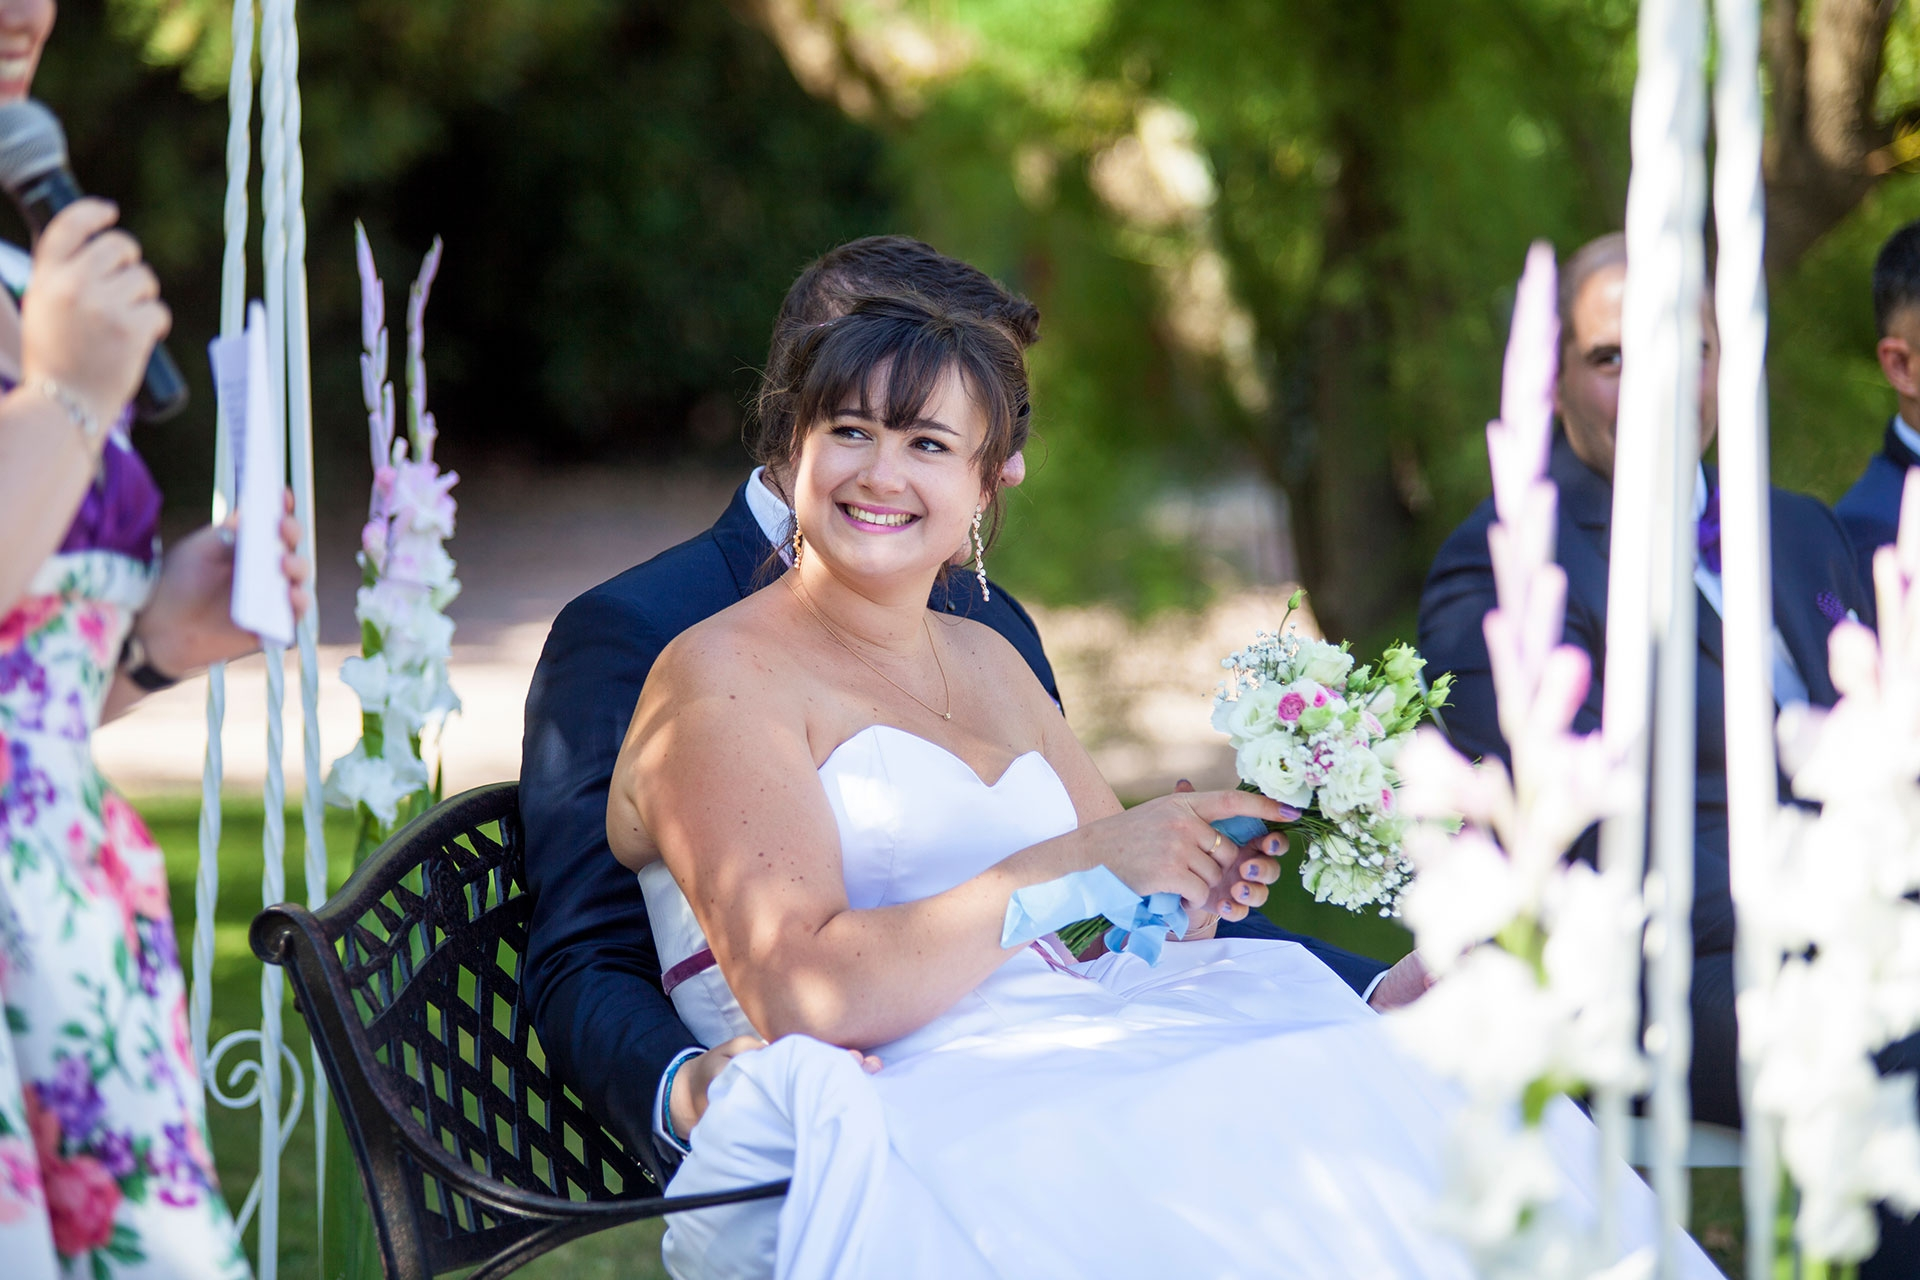 particuliers-evenements-mariages-oui-france&philippe-43